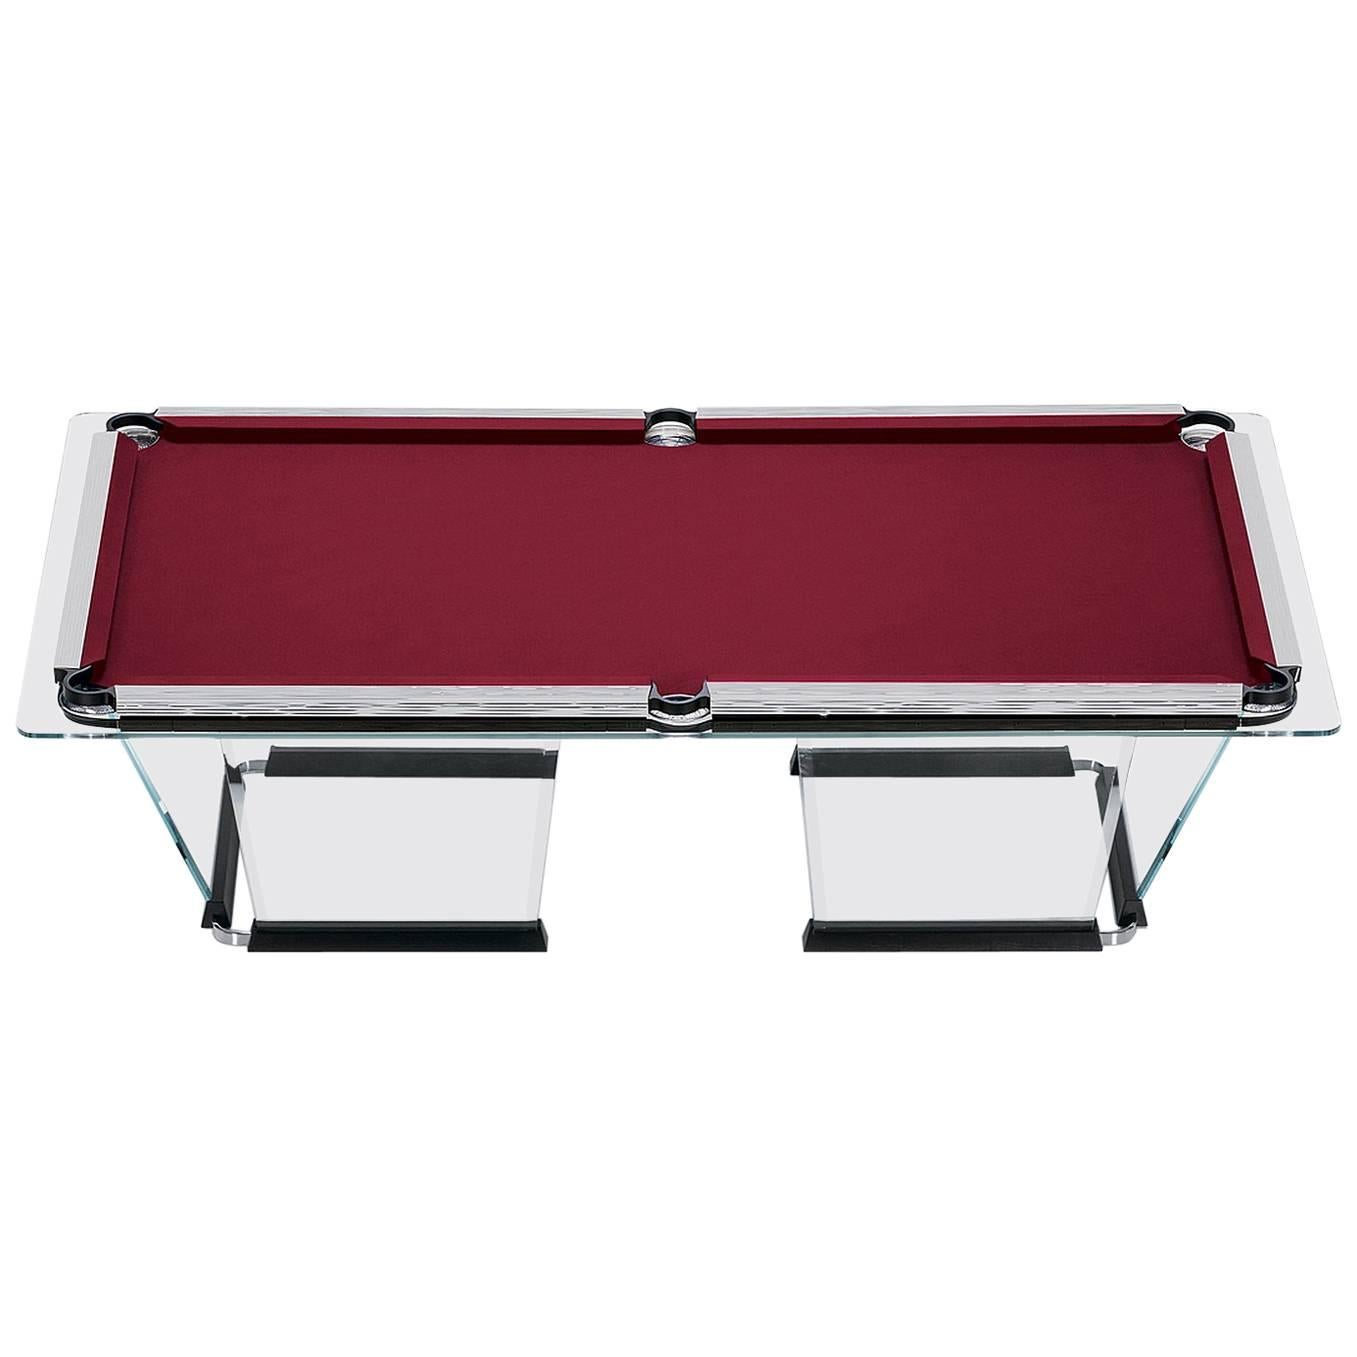 """T1.2"" Crystal Pool Table with Chrome Plated Covers by Marc Sadler for Teckell"